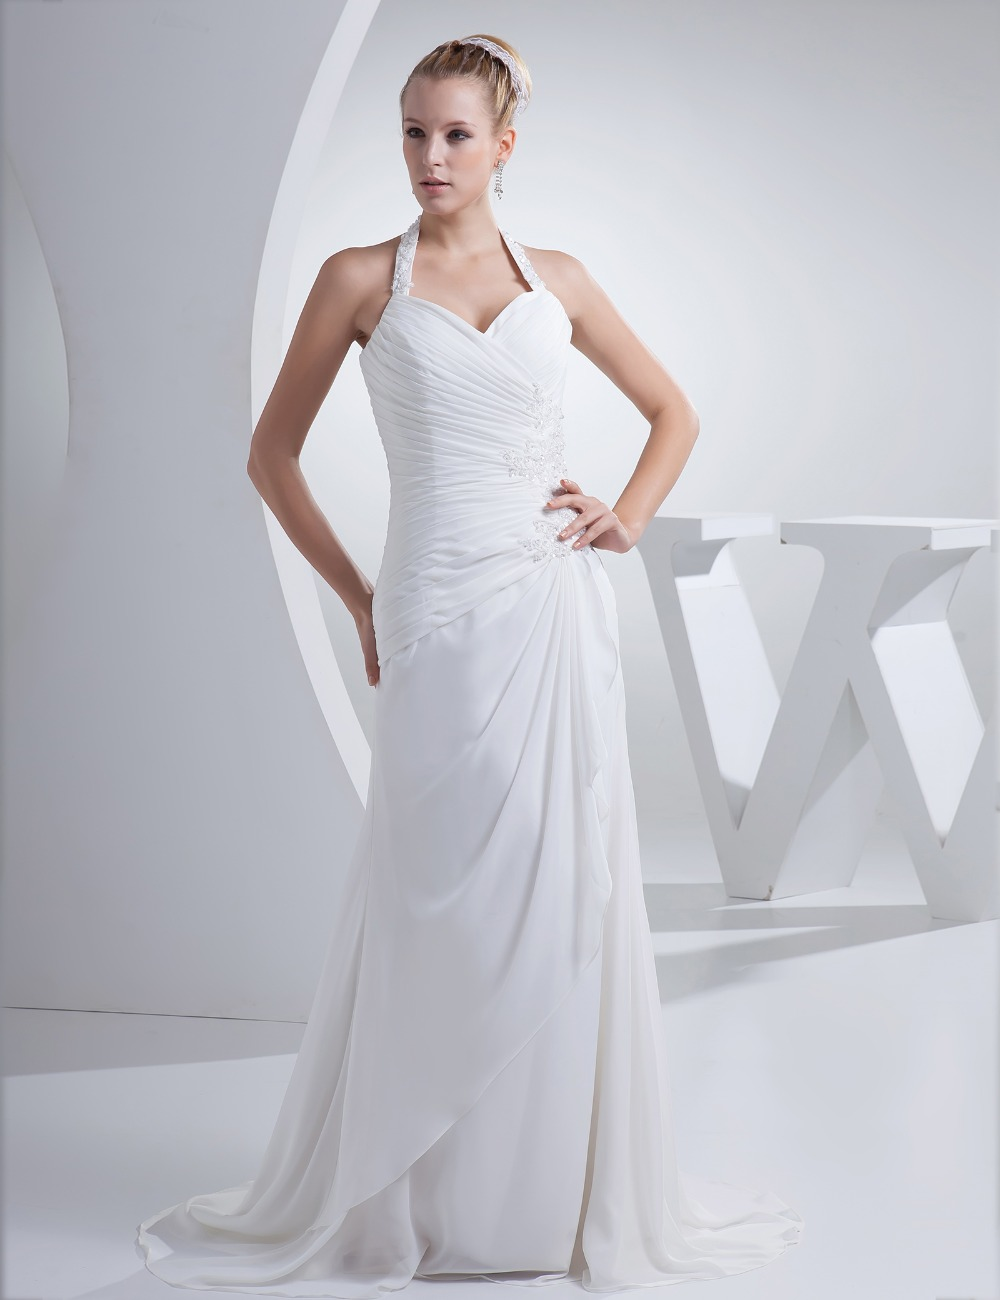 Wedding Gowns For   China : From china wedding dress for bride dresses in